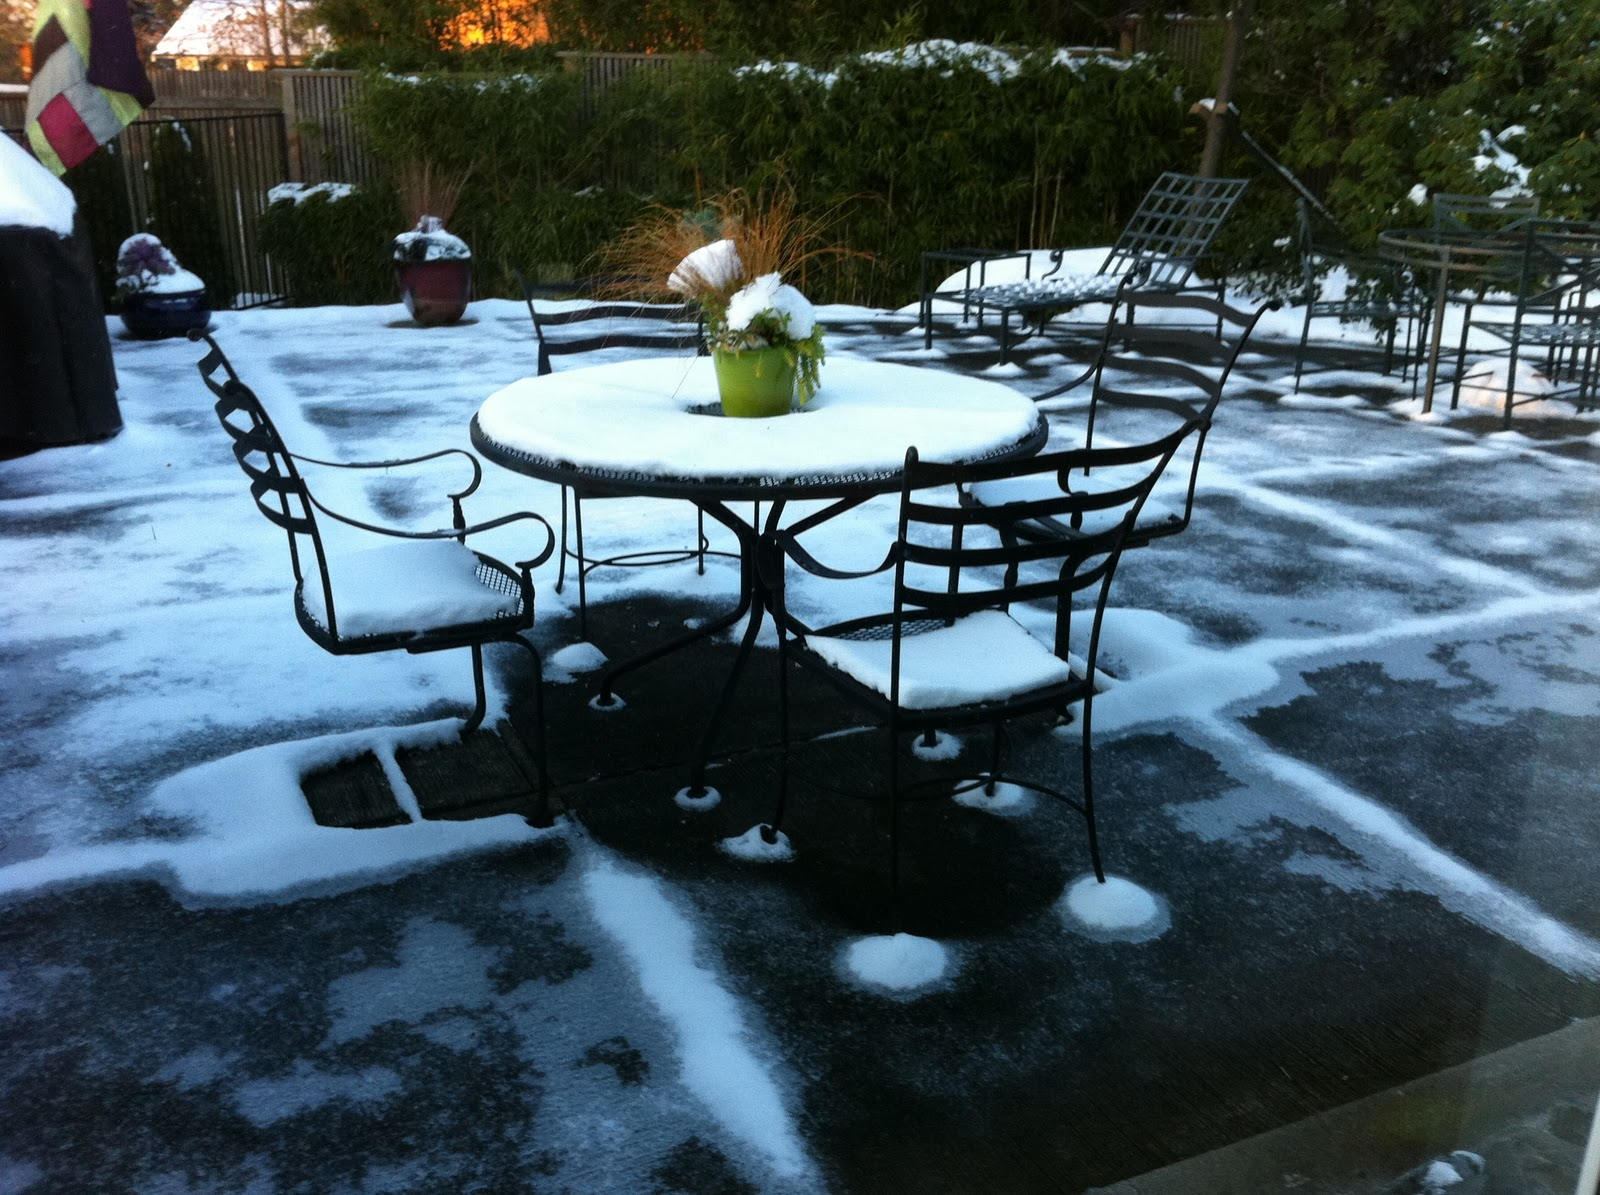 The Pattern Of Snow On This Patio Suggests That The Metal Patio Furniture  Acted As A Heat Transfer And The Cement Froze Faster Adjacent To Where The  ...